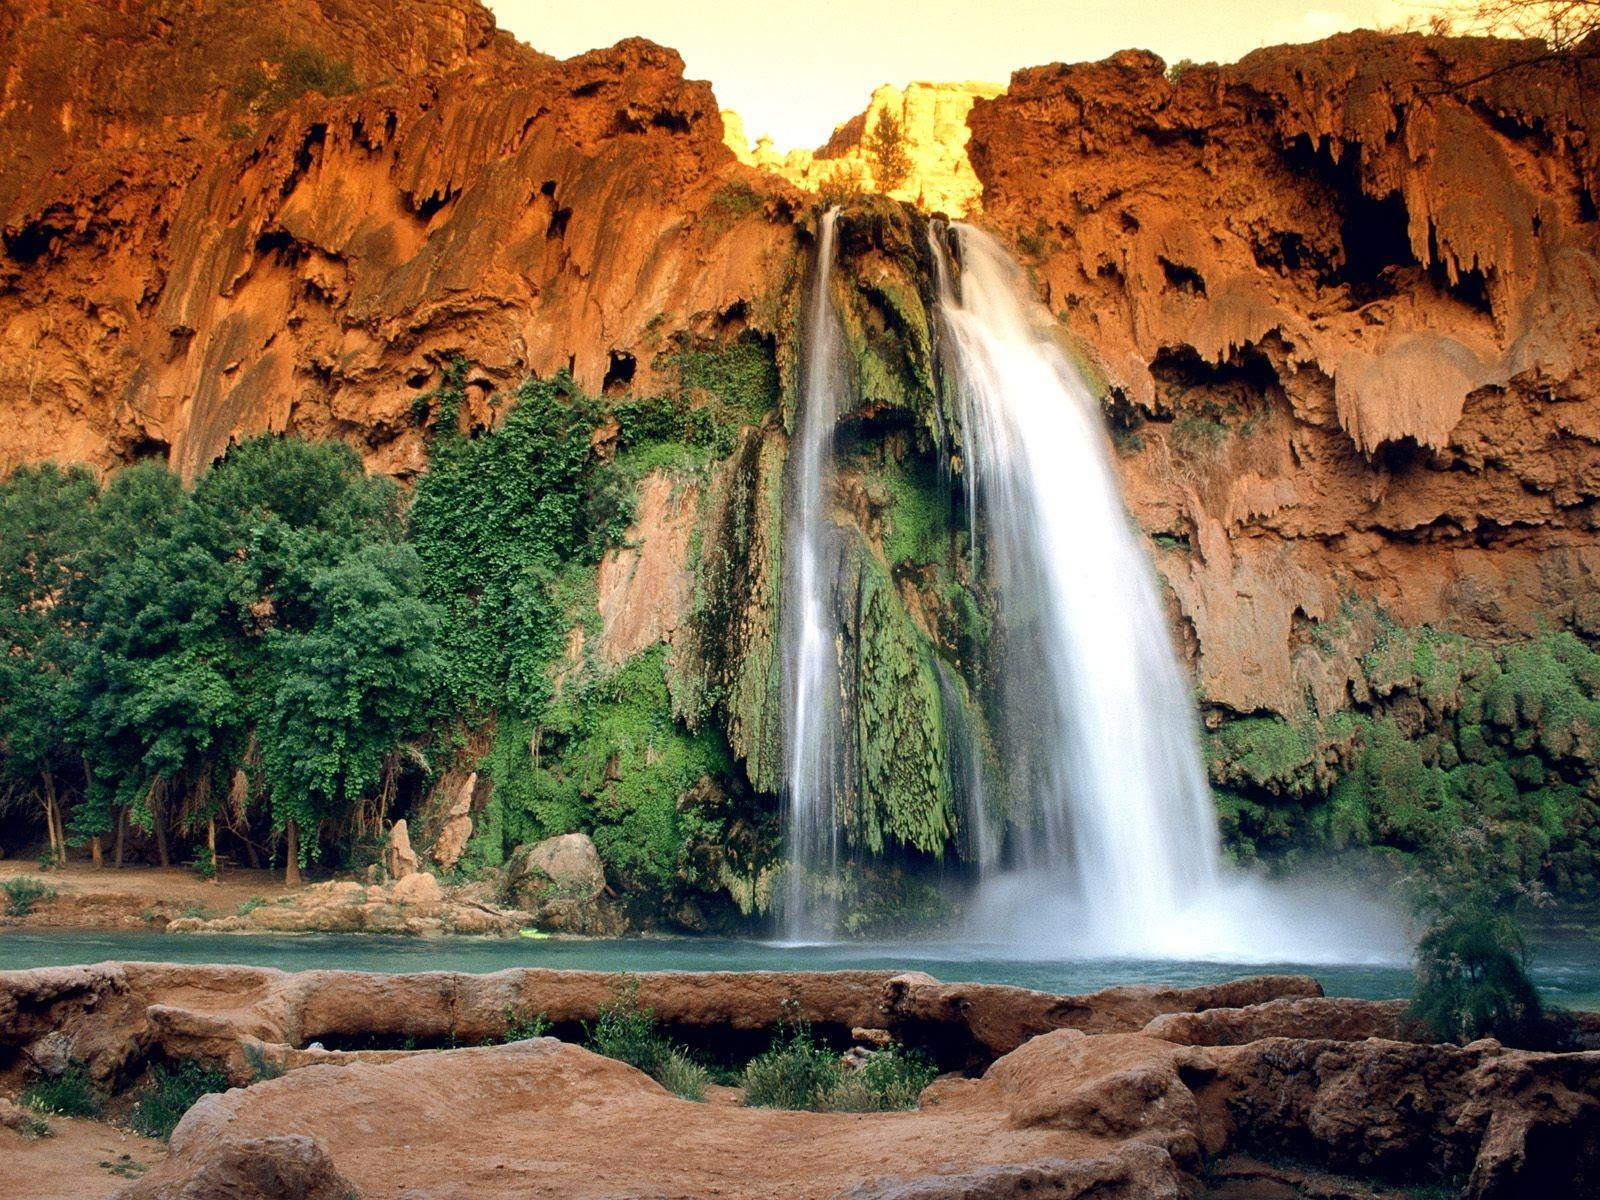 helicopter tours in las vegas nevada with State Park Lake Havasu And Waterfalls on Eiffel Tower together with Picture2 3 together with Bus besides Hard Rock Pool as well Hoover Dam Upgrade Tour.